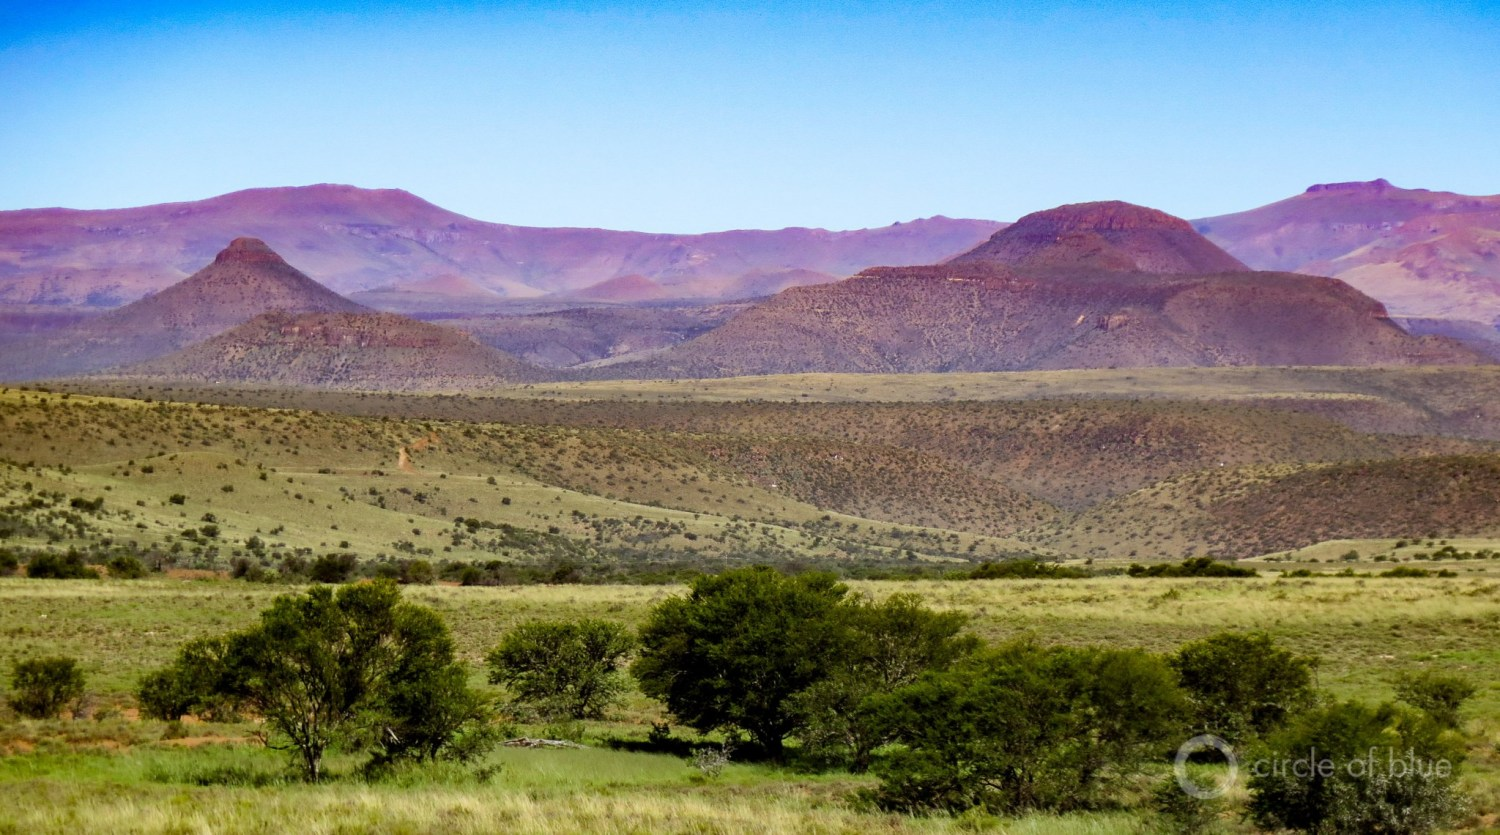 Thinly populated, with towns hours distant from one another, the Karoo's hot desert extends to the sides of mammoth tabletop ridges that turn purple at dusk. This canvas of color and light, of rock and mountain and glorious sunsets, has inspired generations of South African poets and artists. Photo © Keith Schneider / Circle of Blue